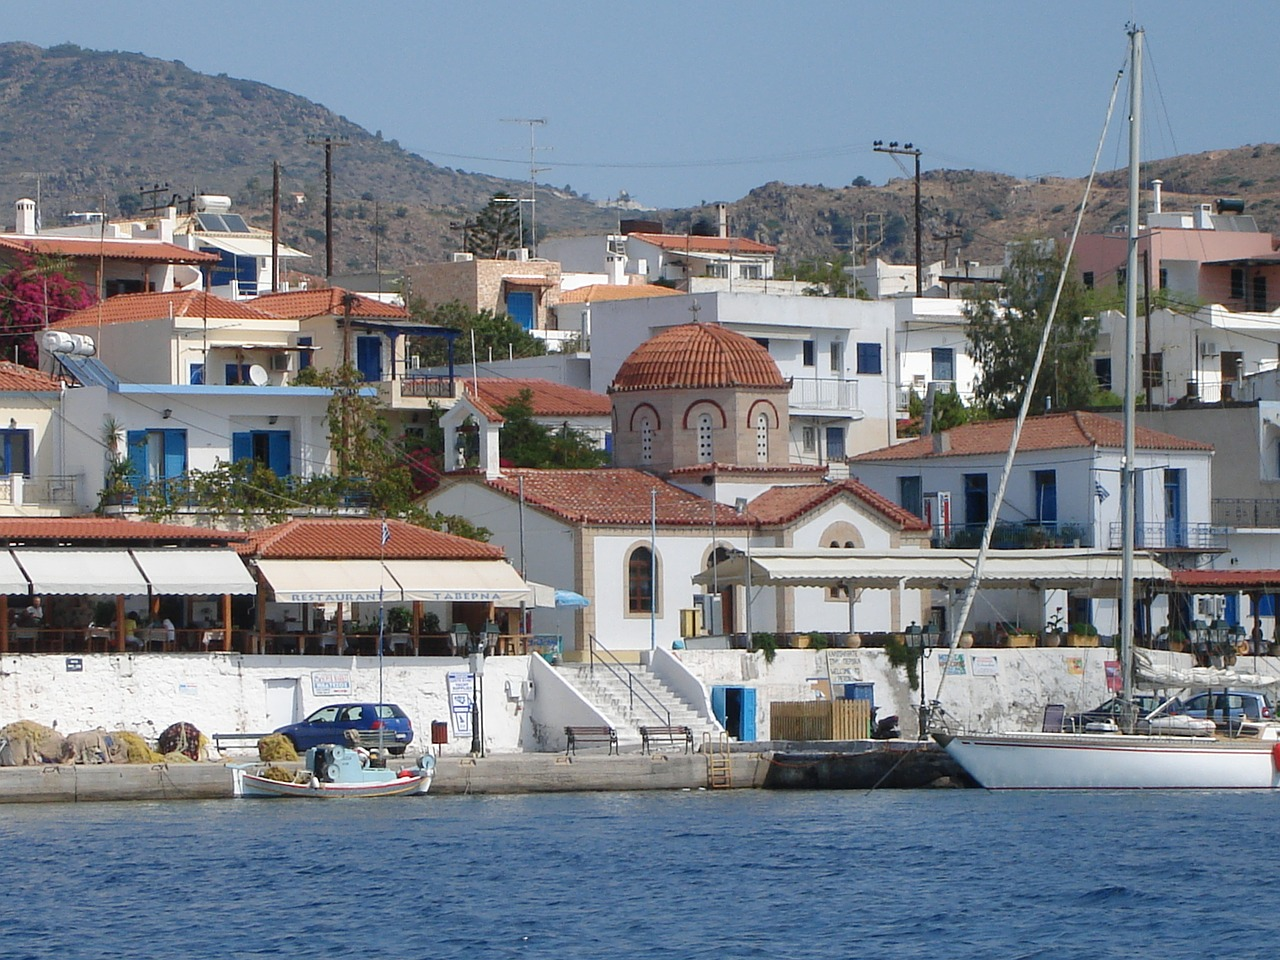 An introduction to the Greek islands - Aegina